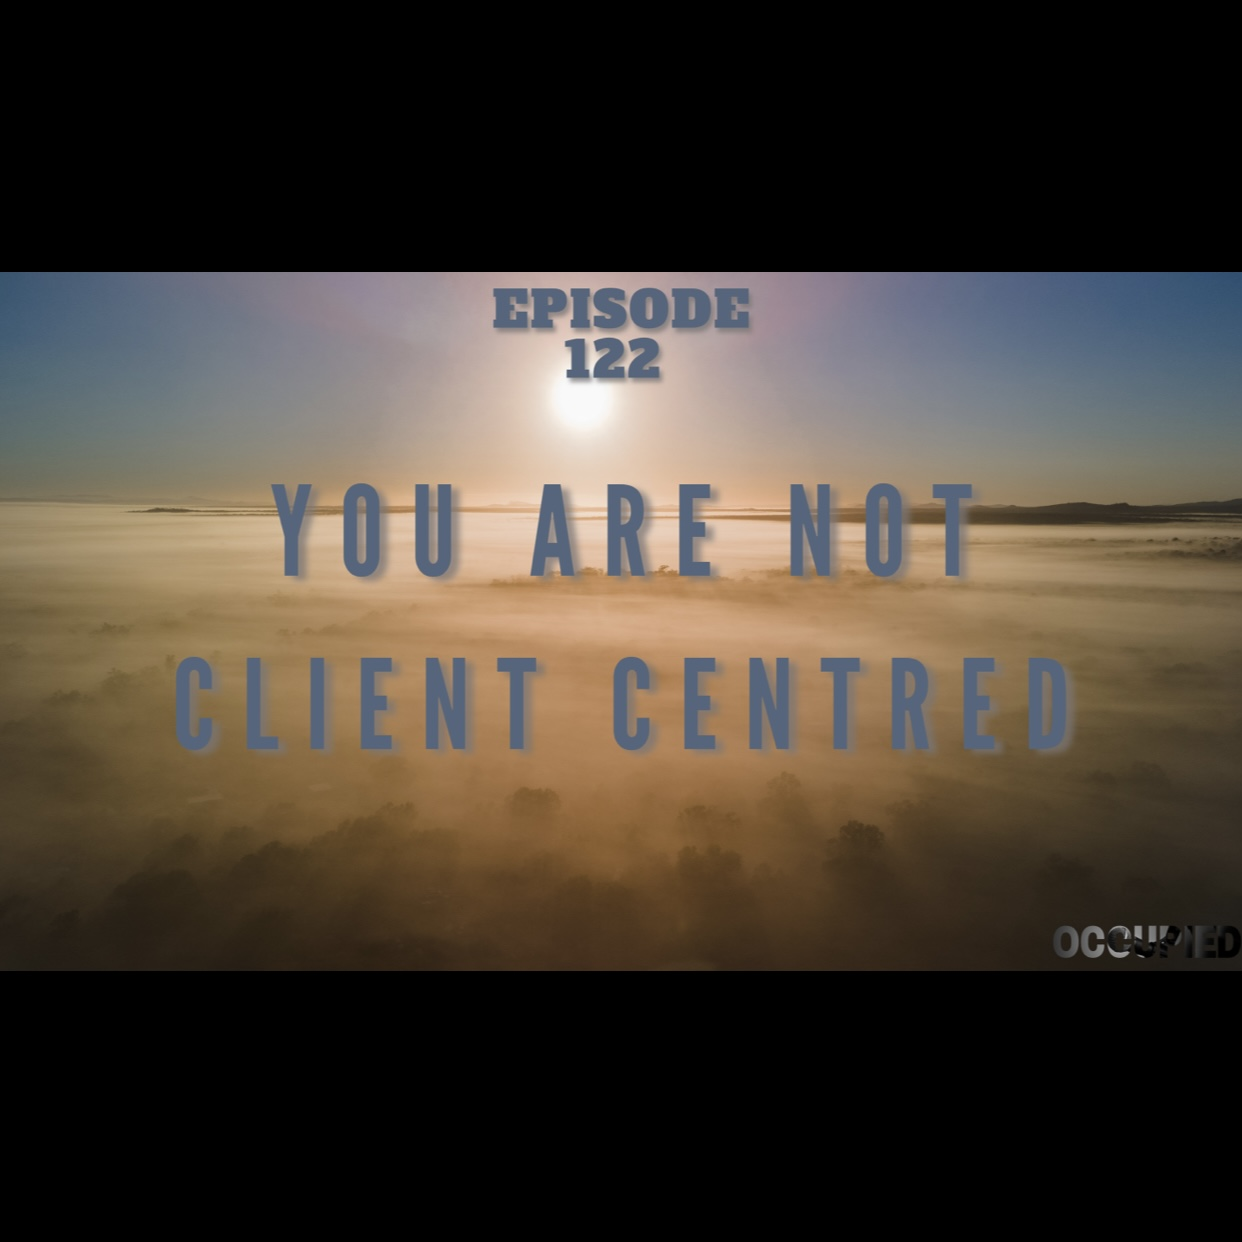 Client Centred